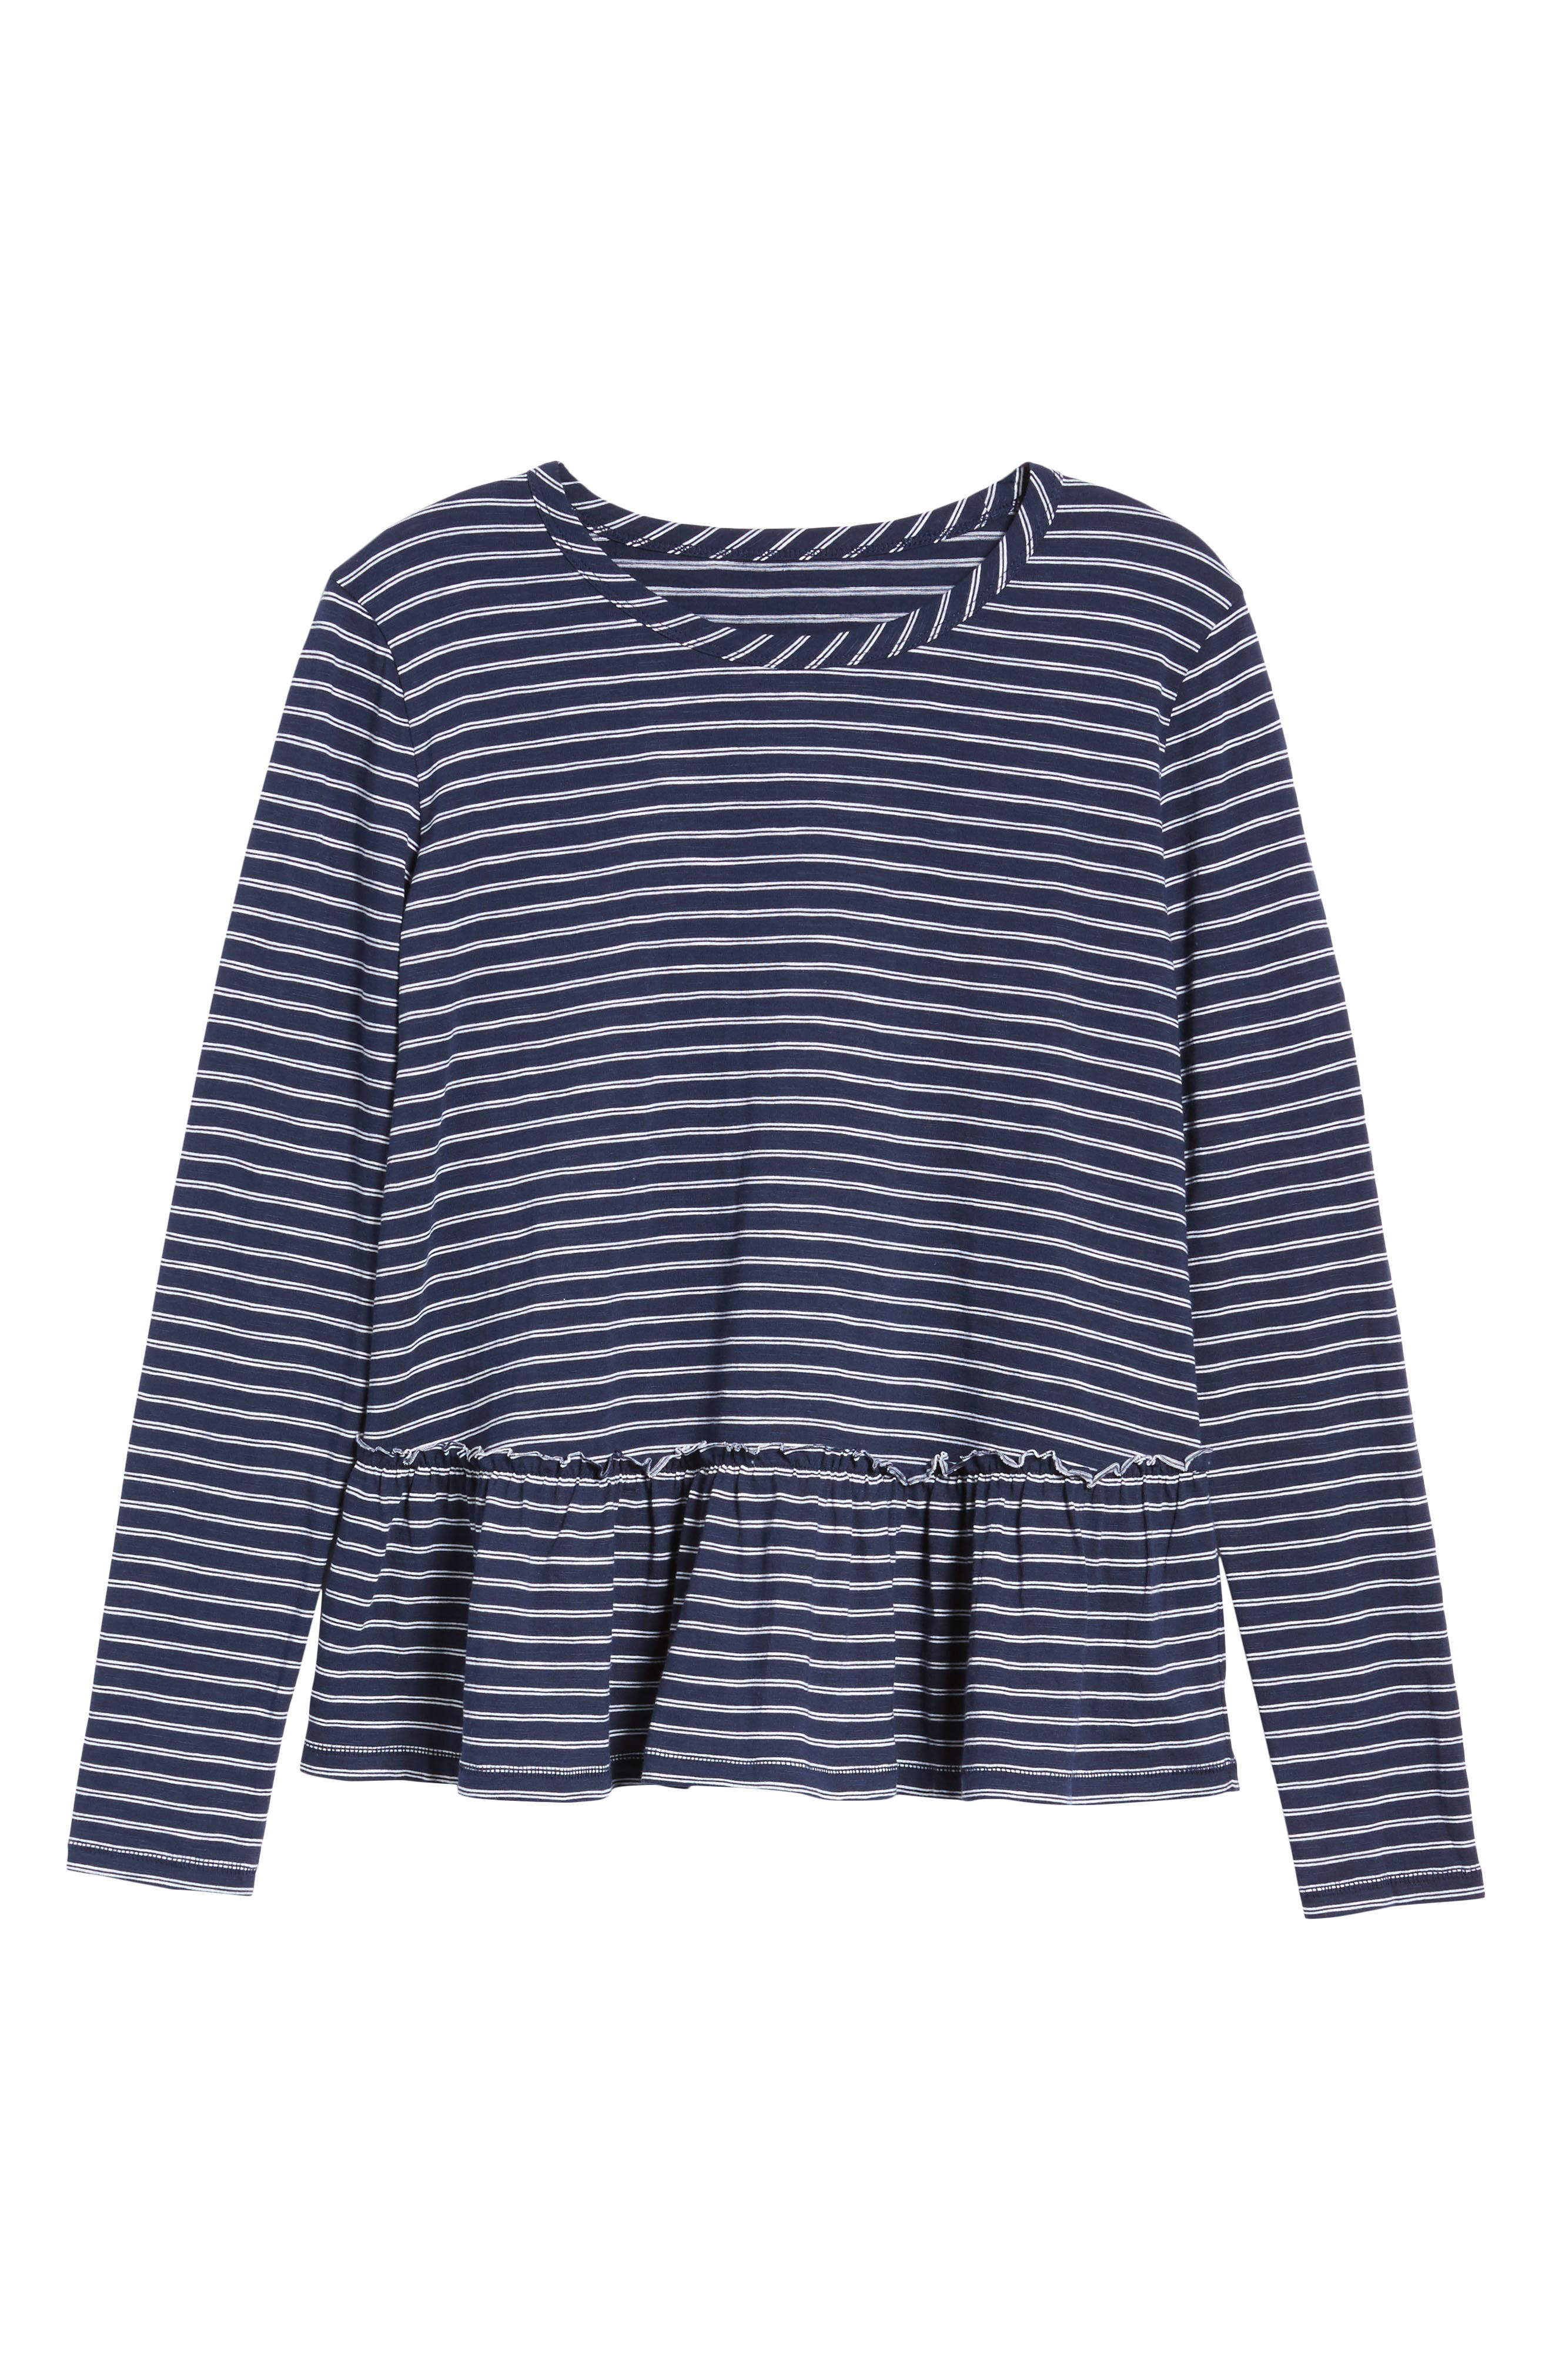 Peplum Tee,                             Alternate thumbnail 6, color,                             Navy- White Double Stripe